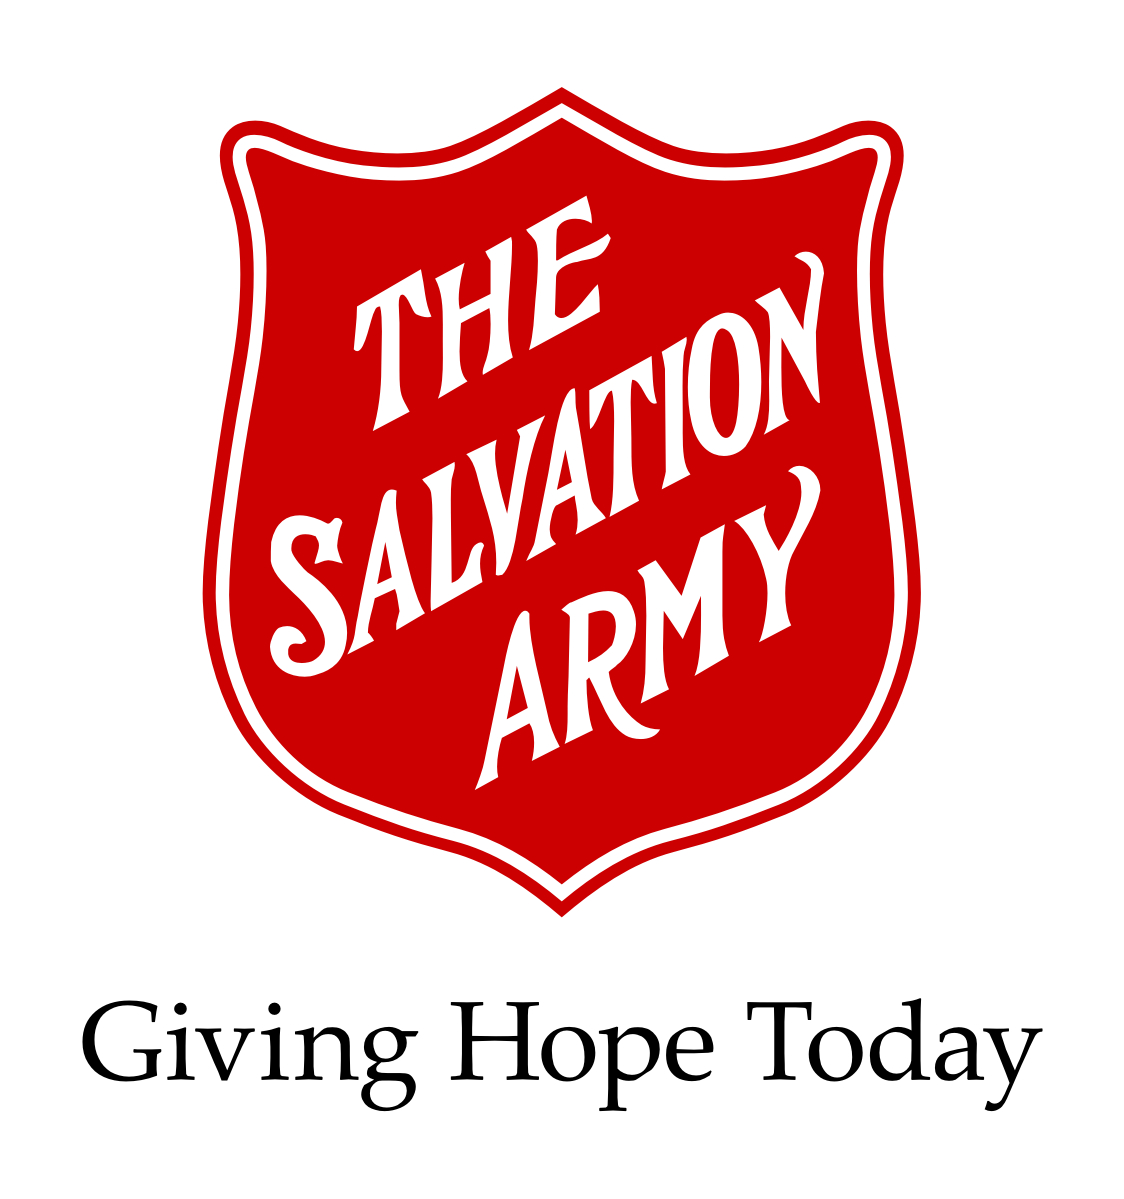 Salvation Army (The) Central York Region Community and Family Services